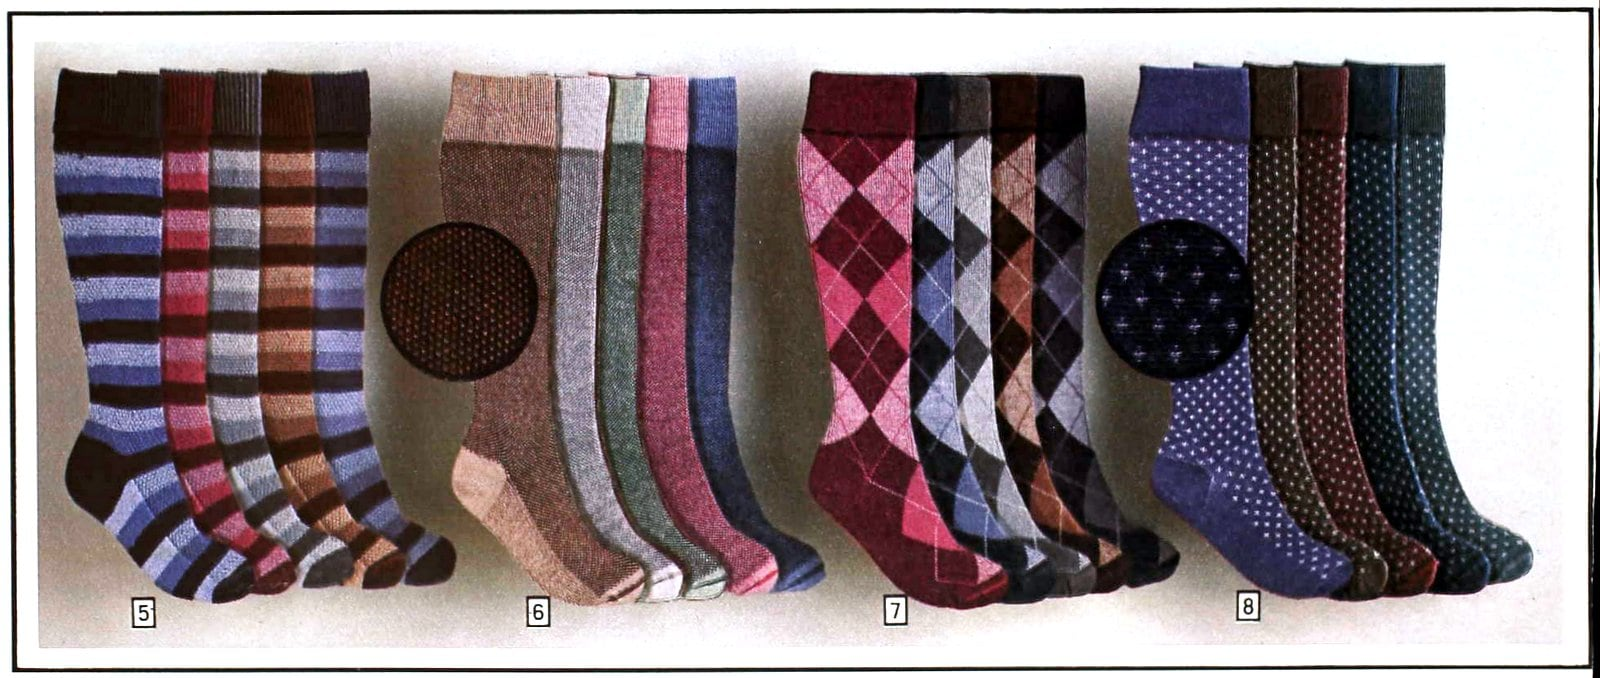 Four styles of knee-high 1980s socks, each in 5 different colorways